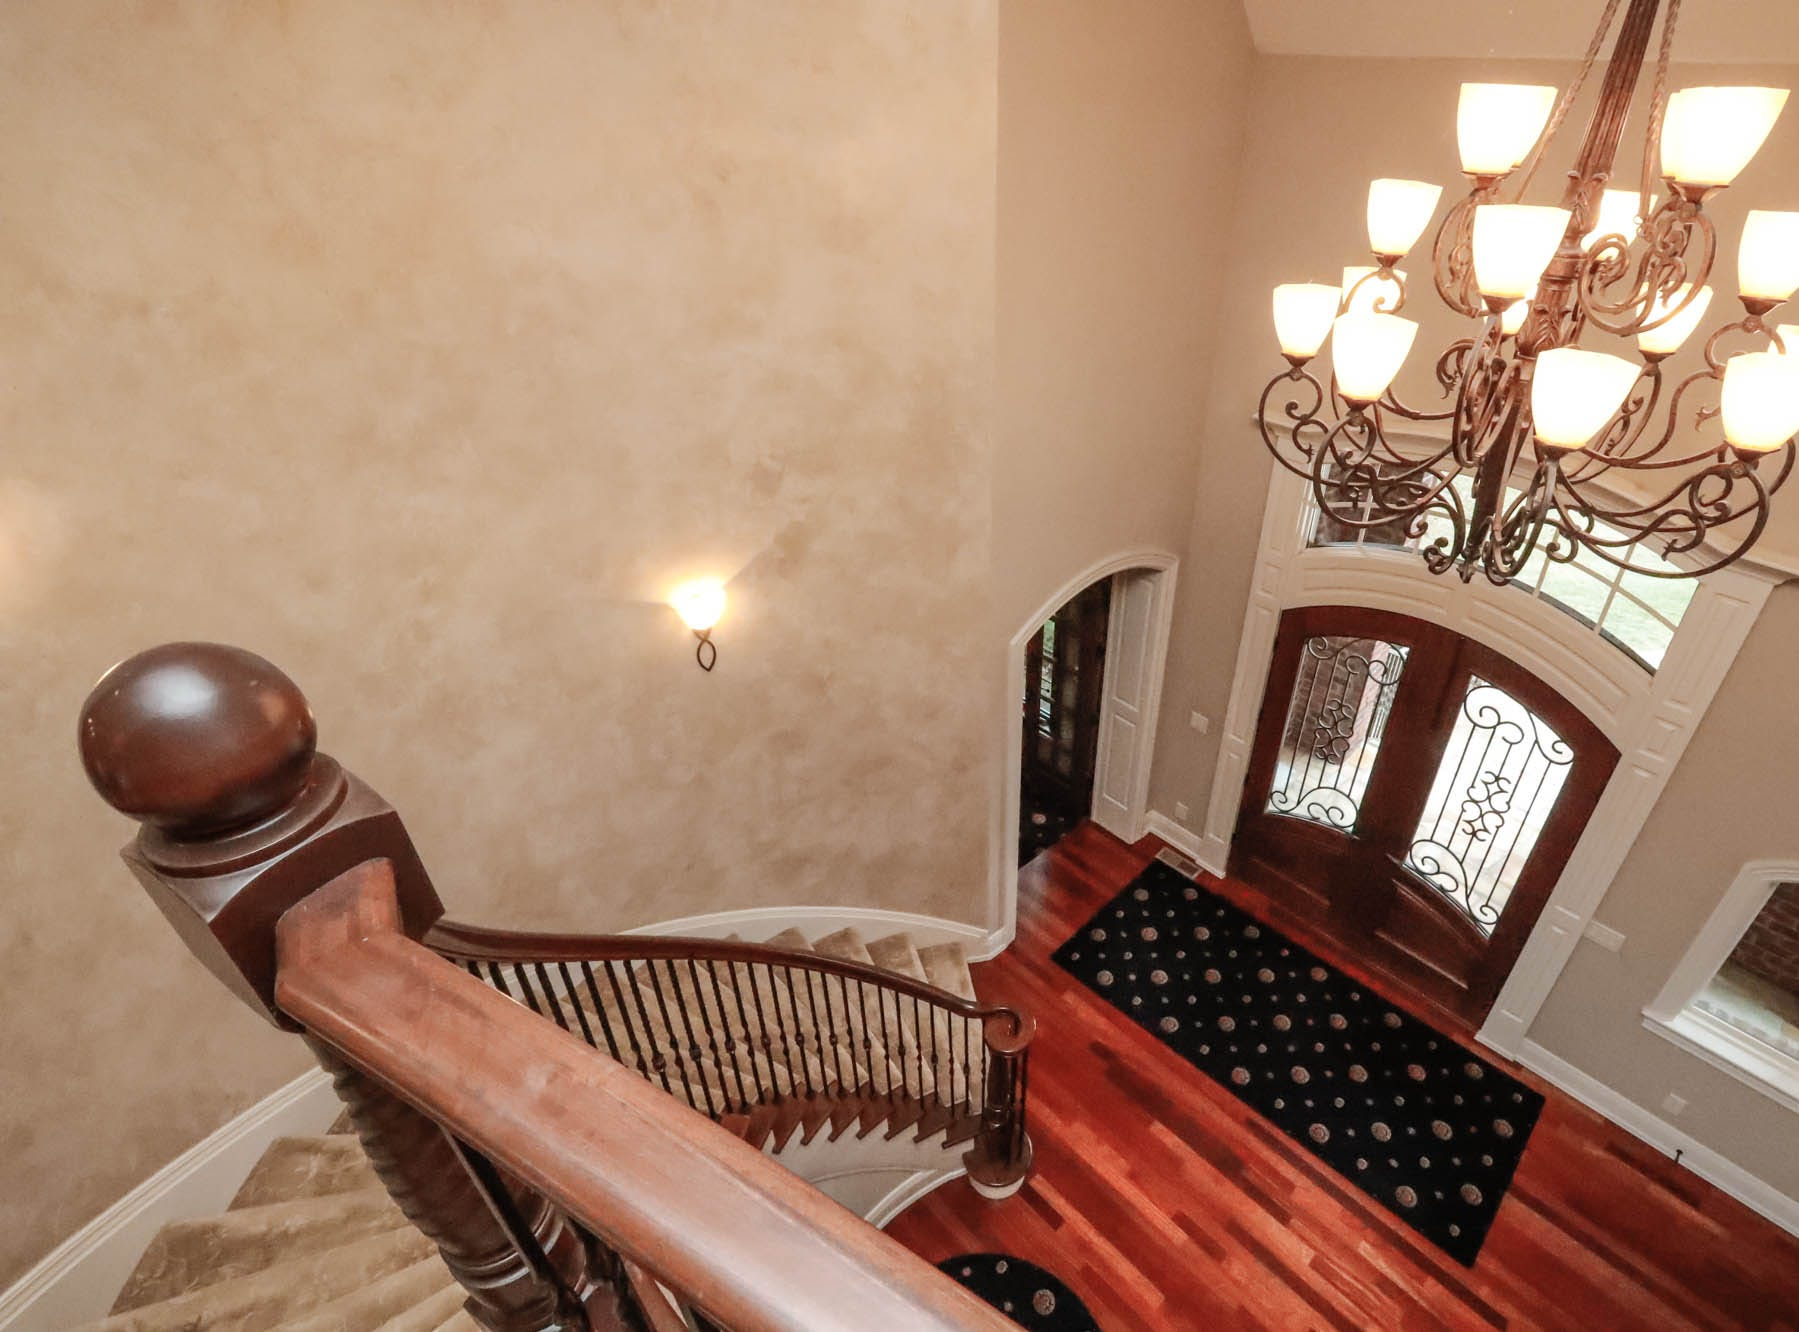 The grand staircase winds up a curving Tuscan painted wall in a traditional style $2m home with elements of French country and Tuscan influence up for sale in Bargersville Ind. on Wednesday, Jan. 9, 2019. The house sits on 8.1 acres.